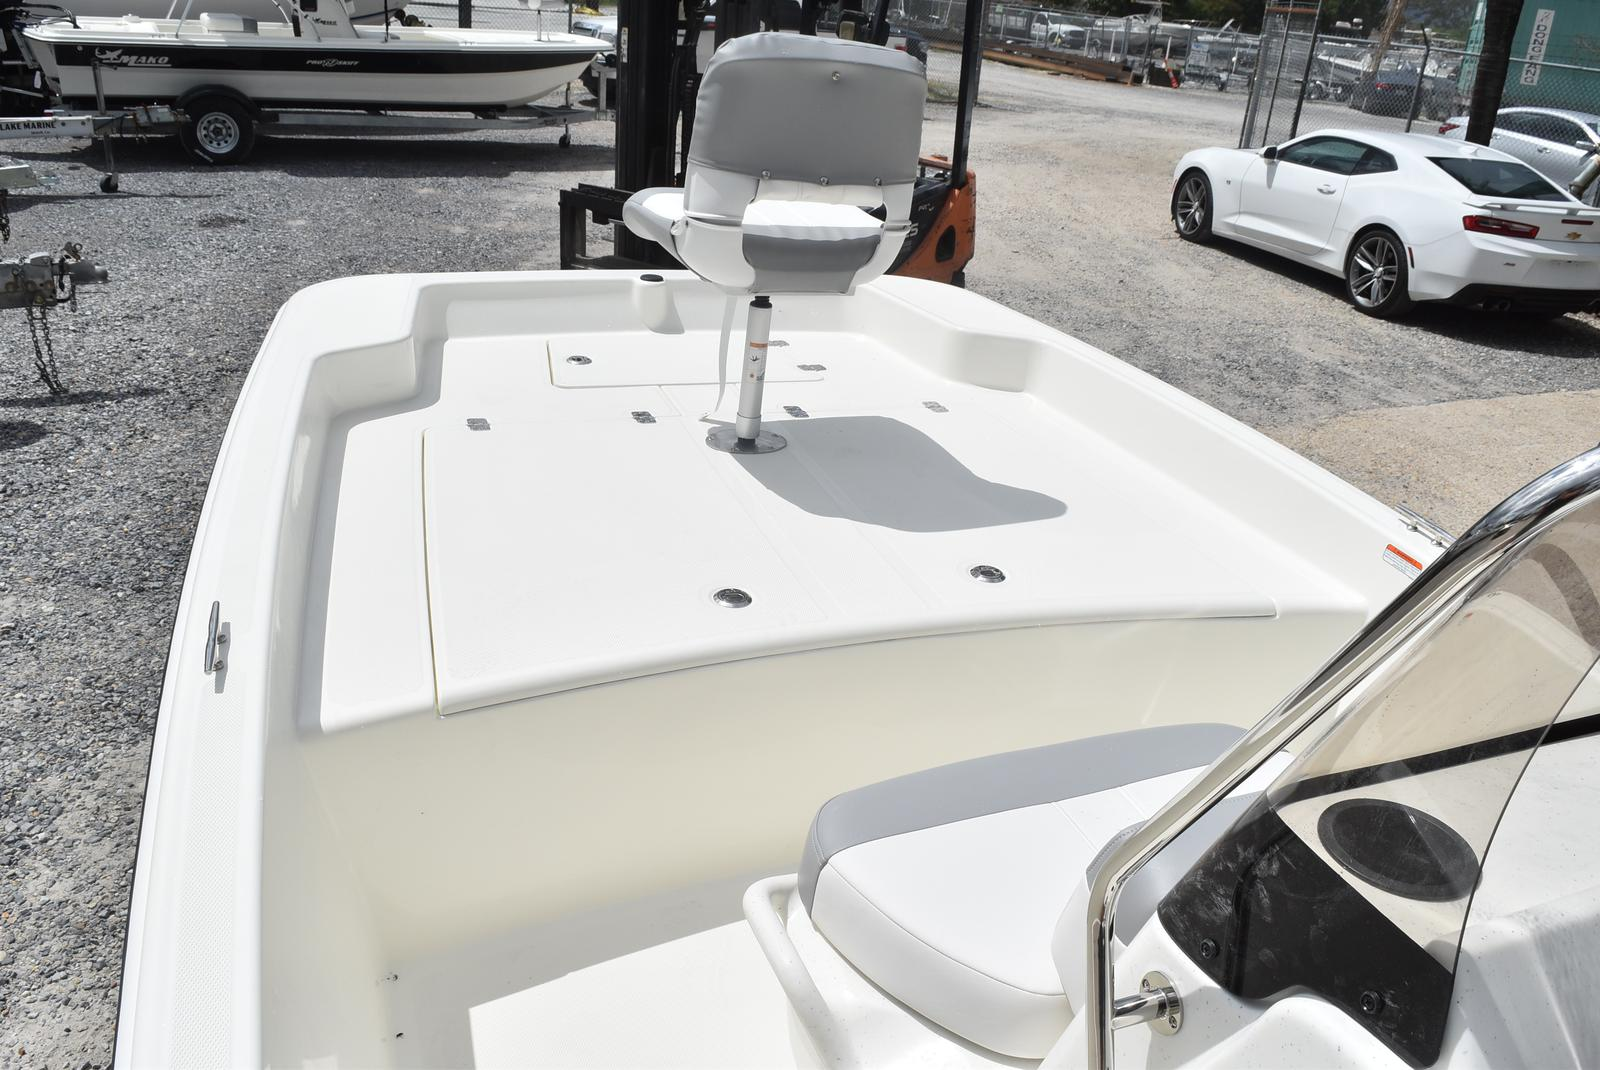 2020 Mako boat for sale, model of the boat is Pro Skiff 17, 75 ELPT & Image # 425 of 702